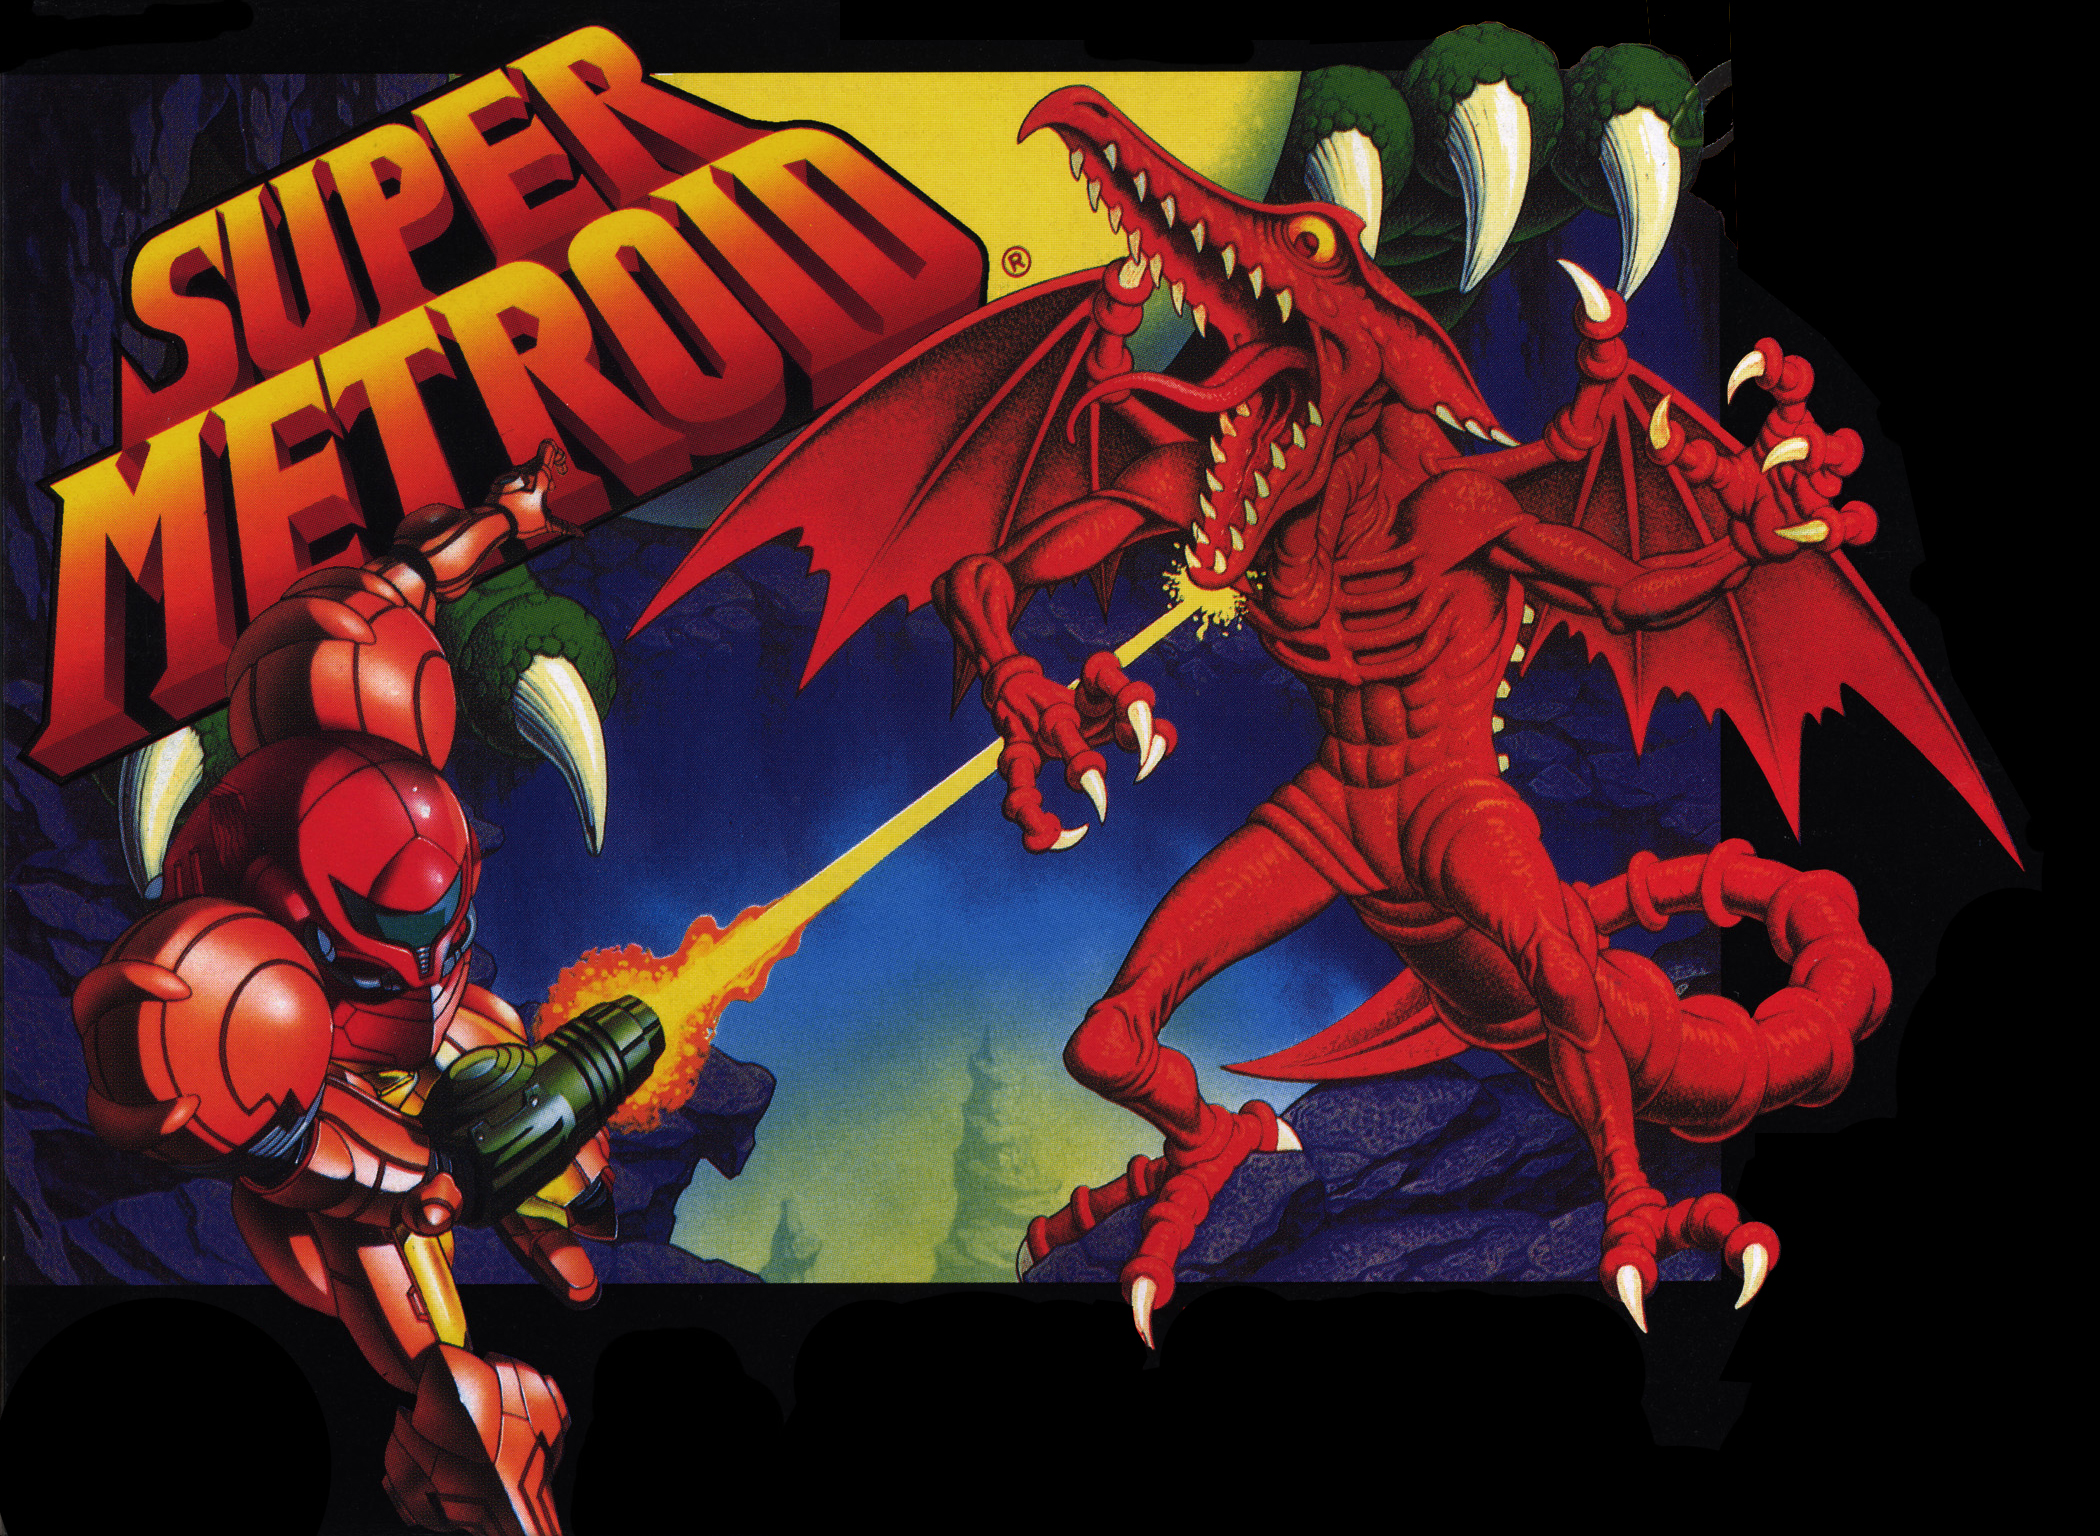 super_metroid_cover